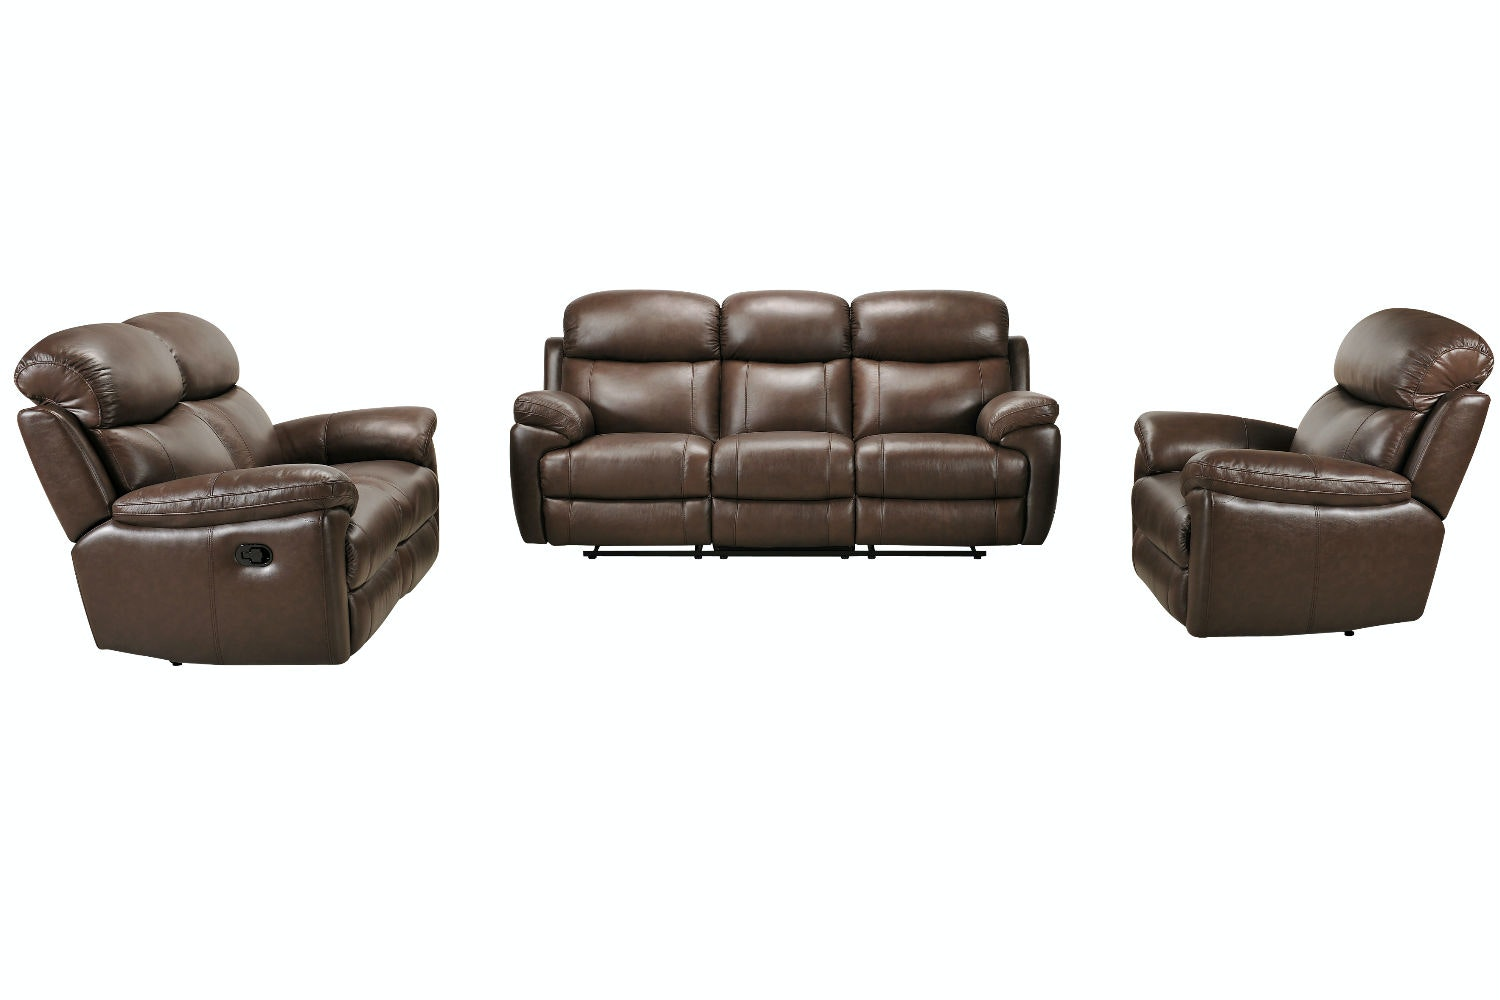 Maya 2-Seater Recliner Sofa | Colour options